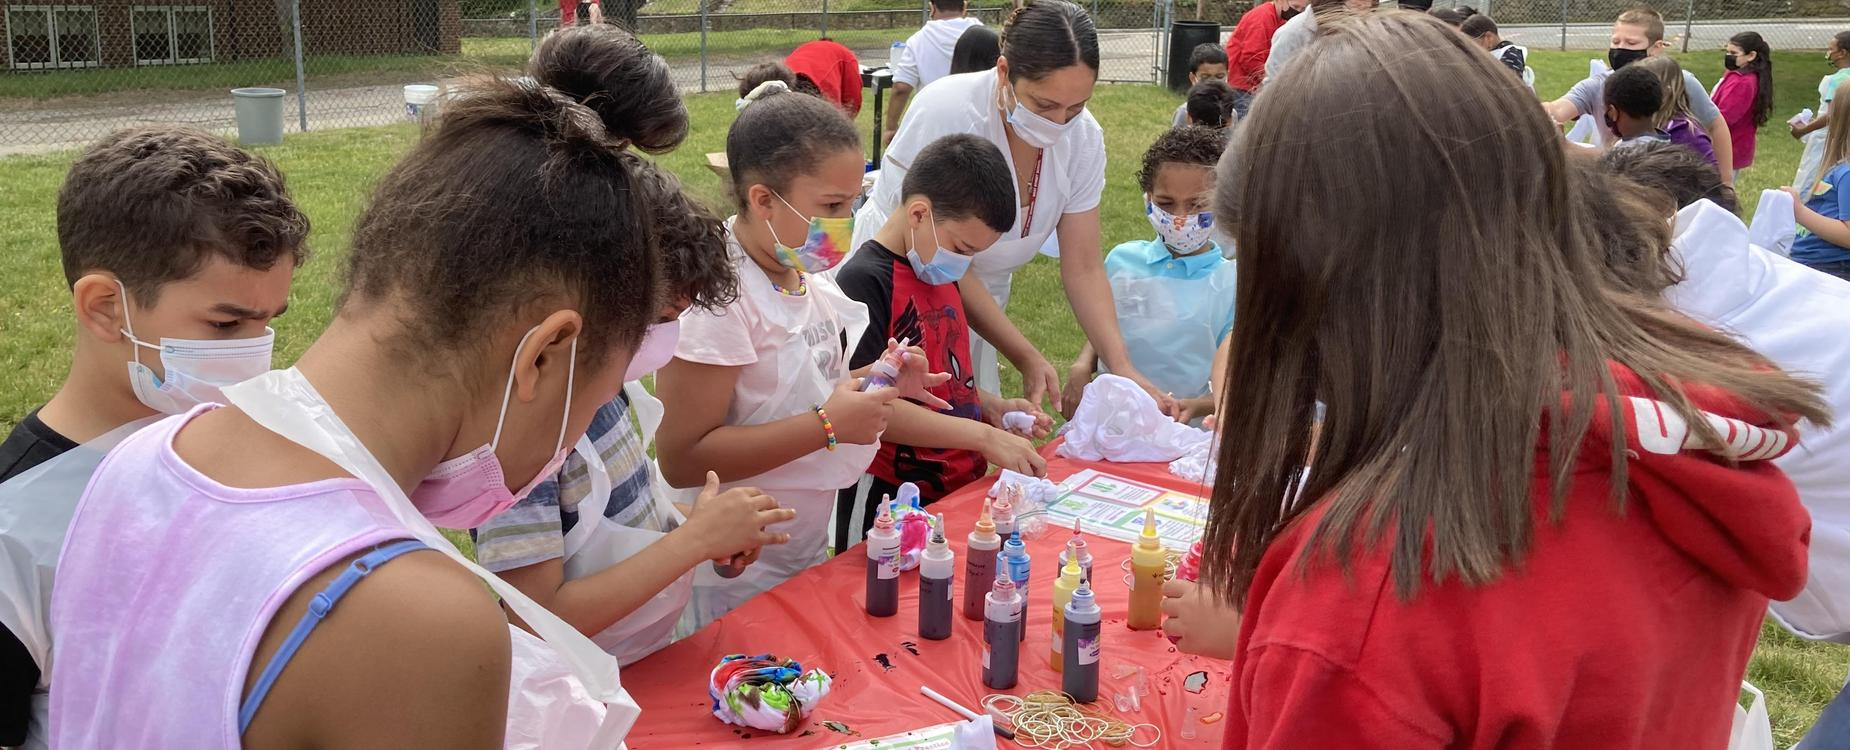 Students at West Street School have a fun tie-dye event as a part of a PBIS reward